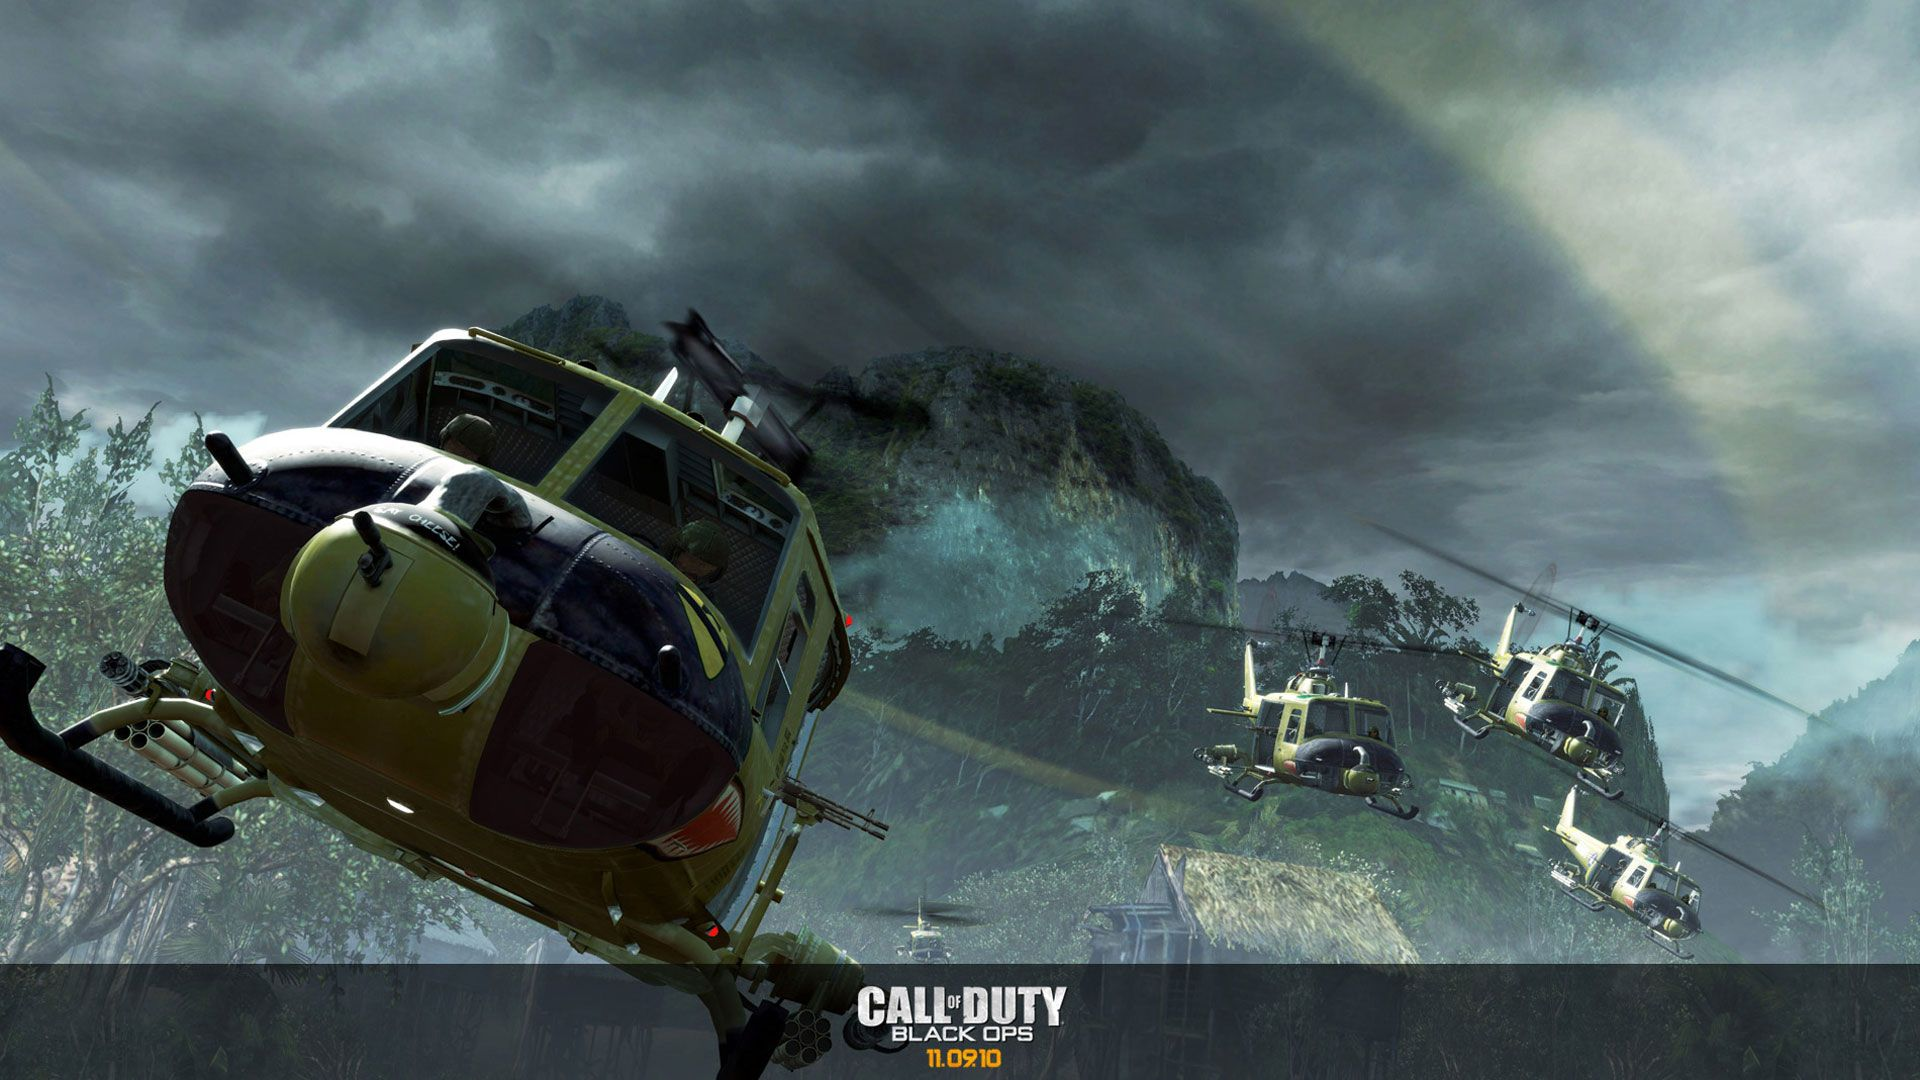 call of duty 1 wallpaper - photo #12